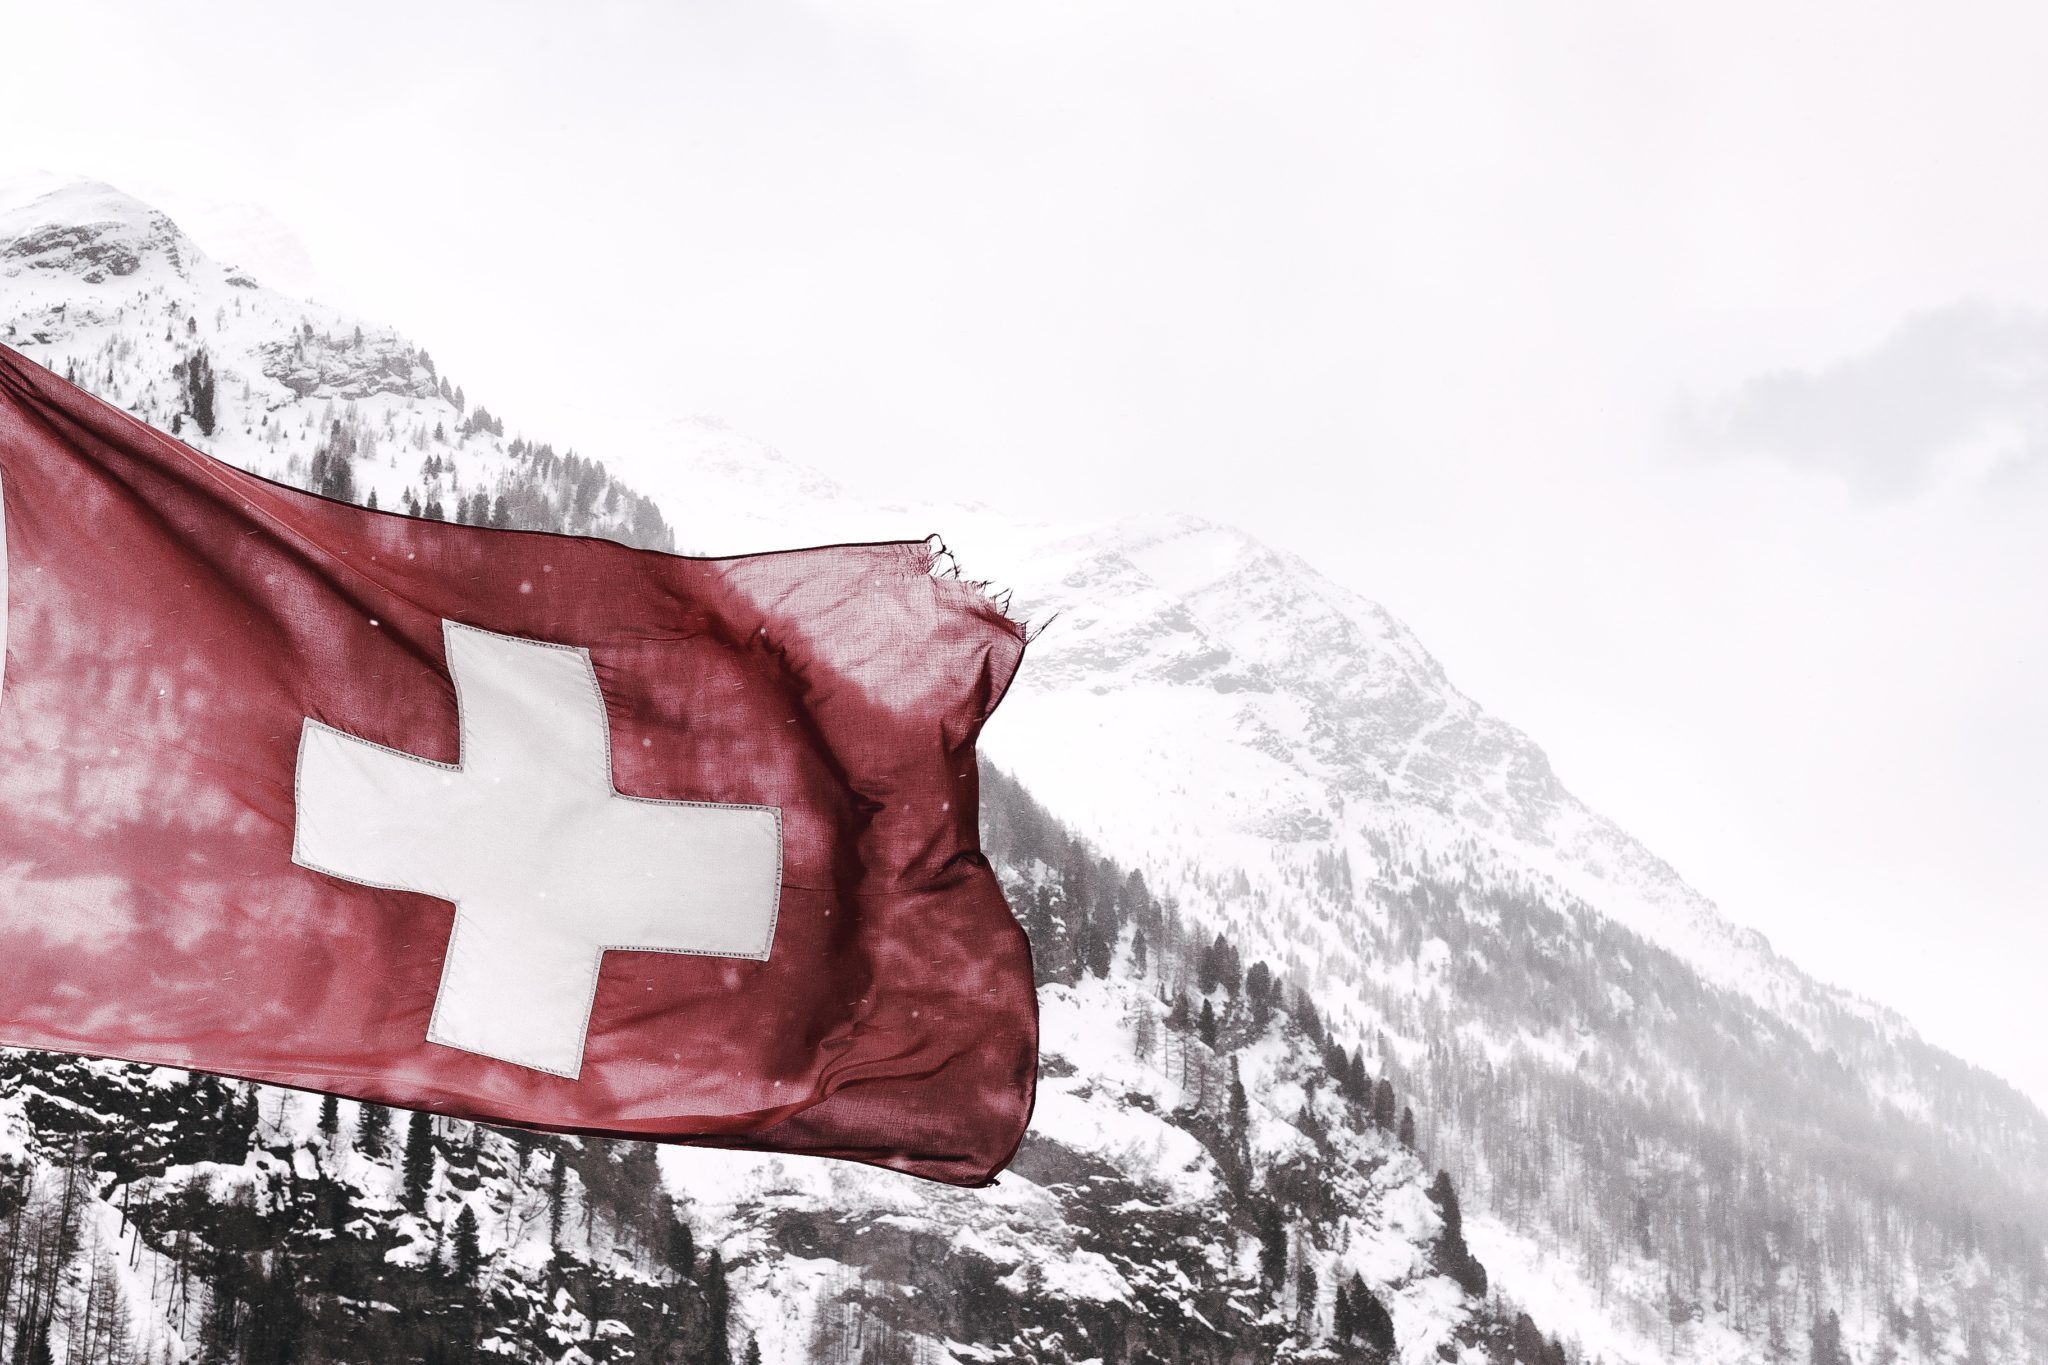 FINMA The Swiss Financial Market Supervisory Authority